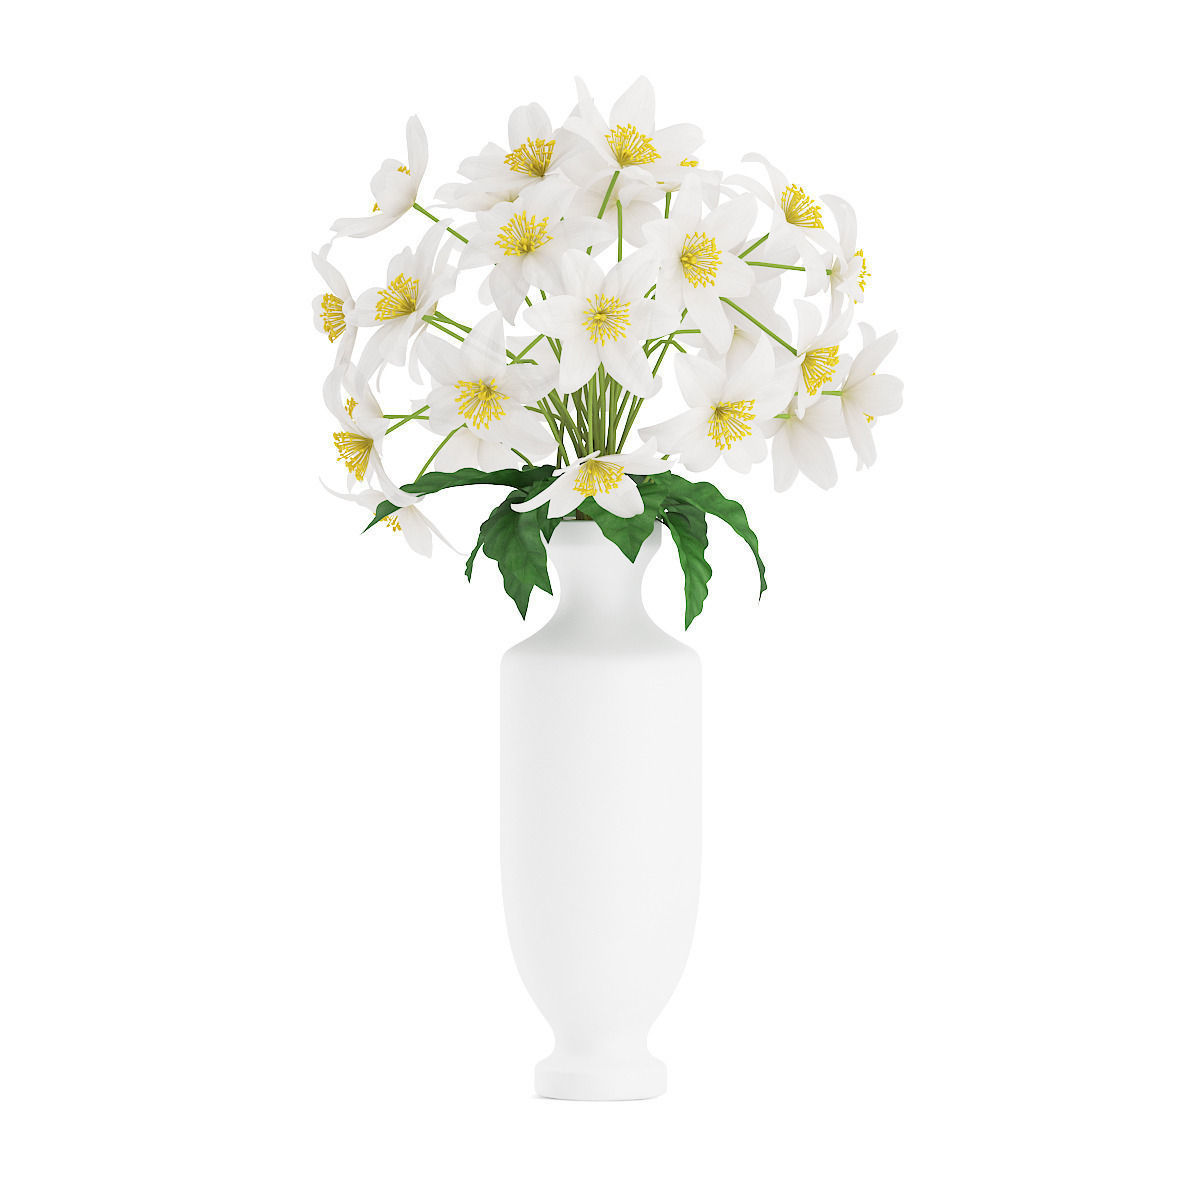 White flowers in tall vase 3d cgtrader white flowers in tall vase 3d model max obj fbx c4d mtl 1 reviewsmspy